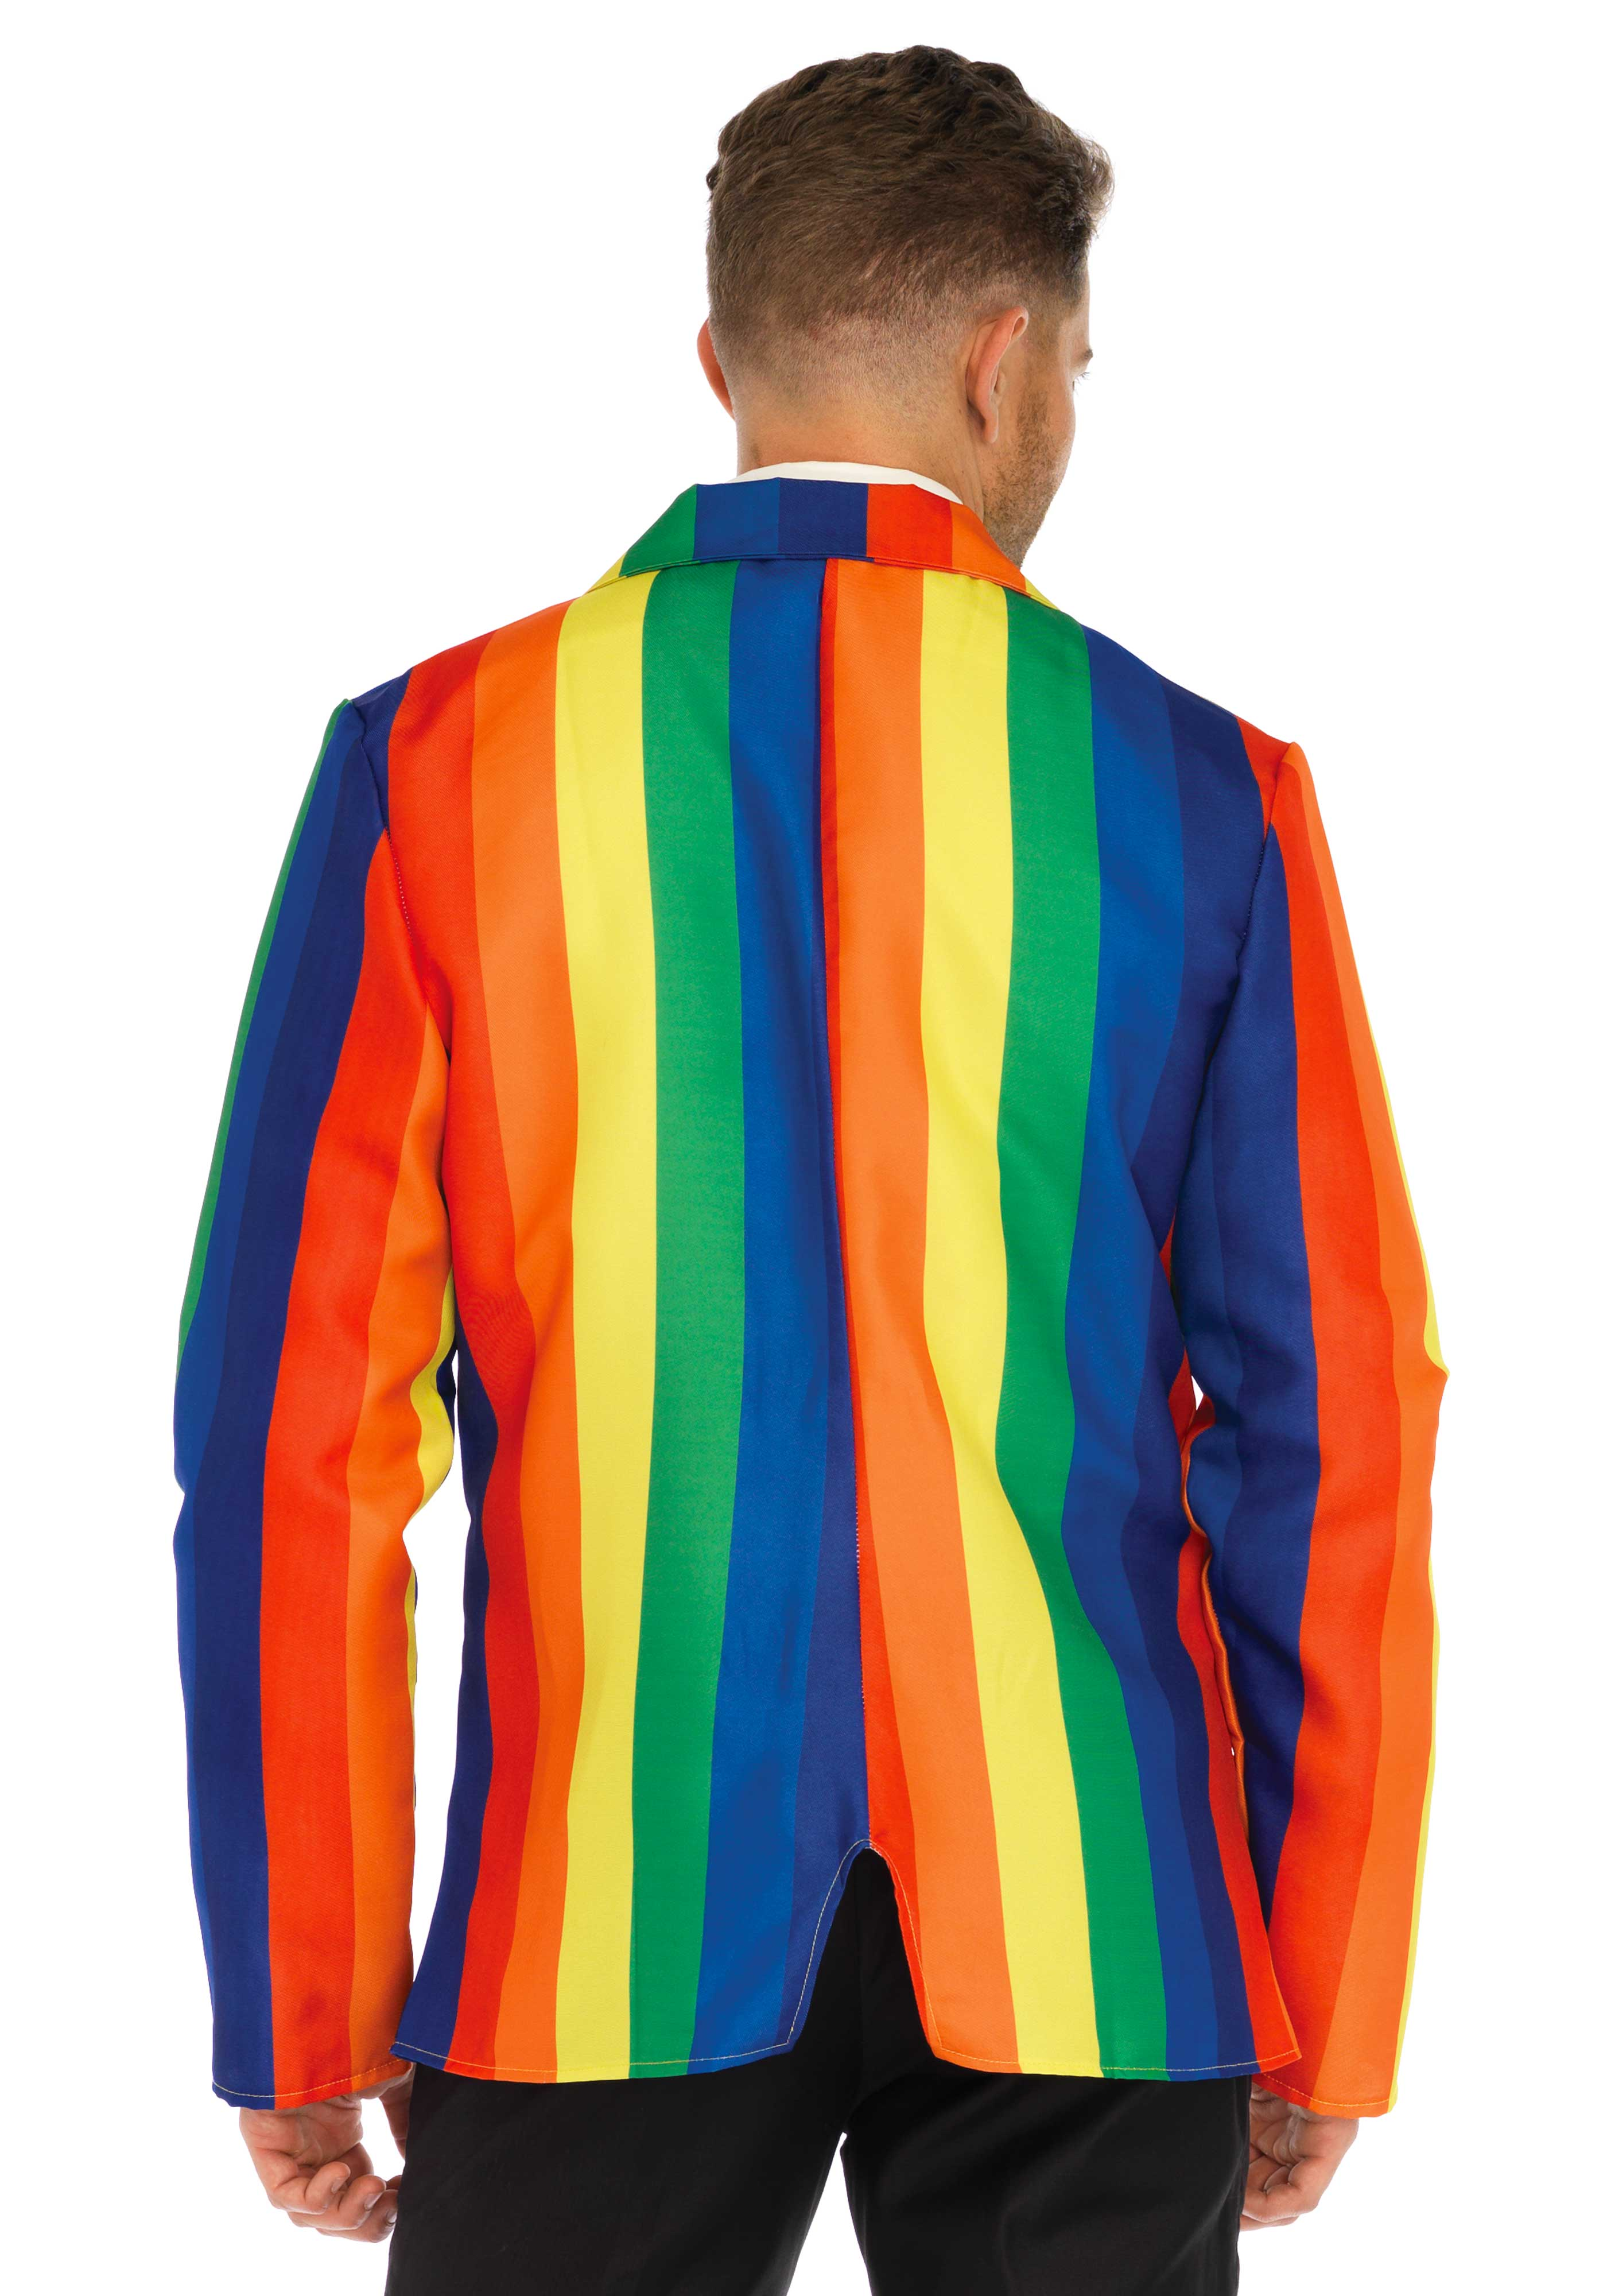 2 PC. Rainbow Suit, includes suit jacket and matching striped tie.